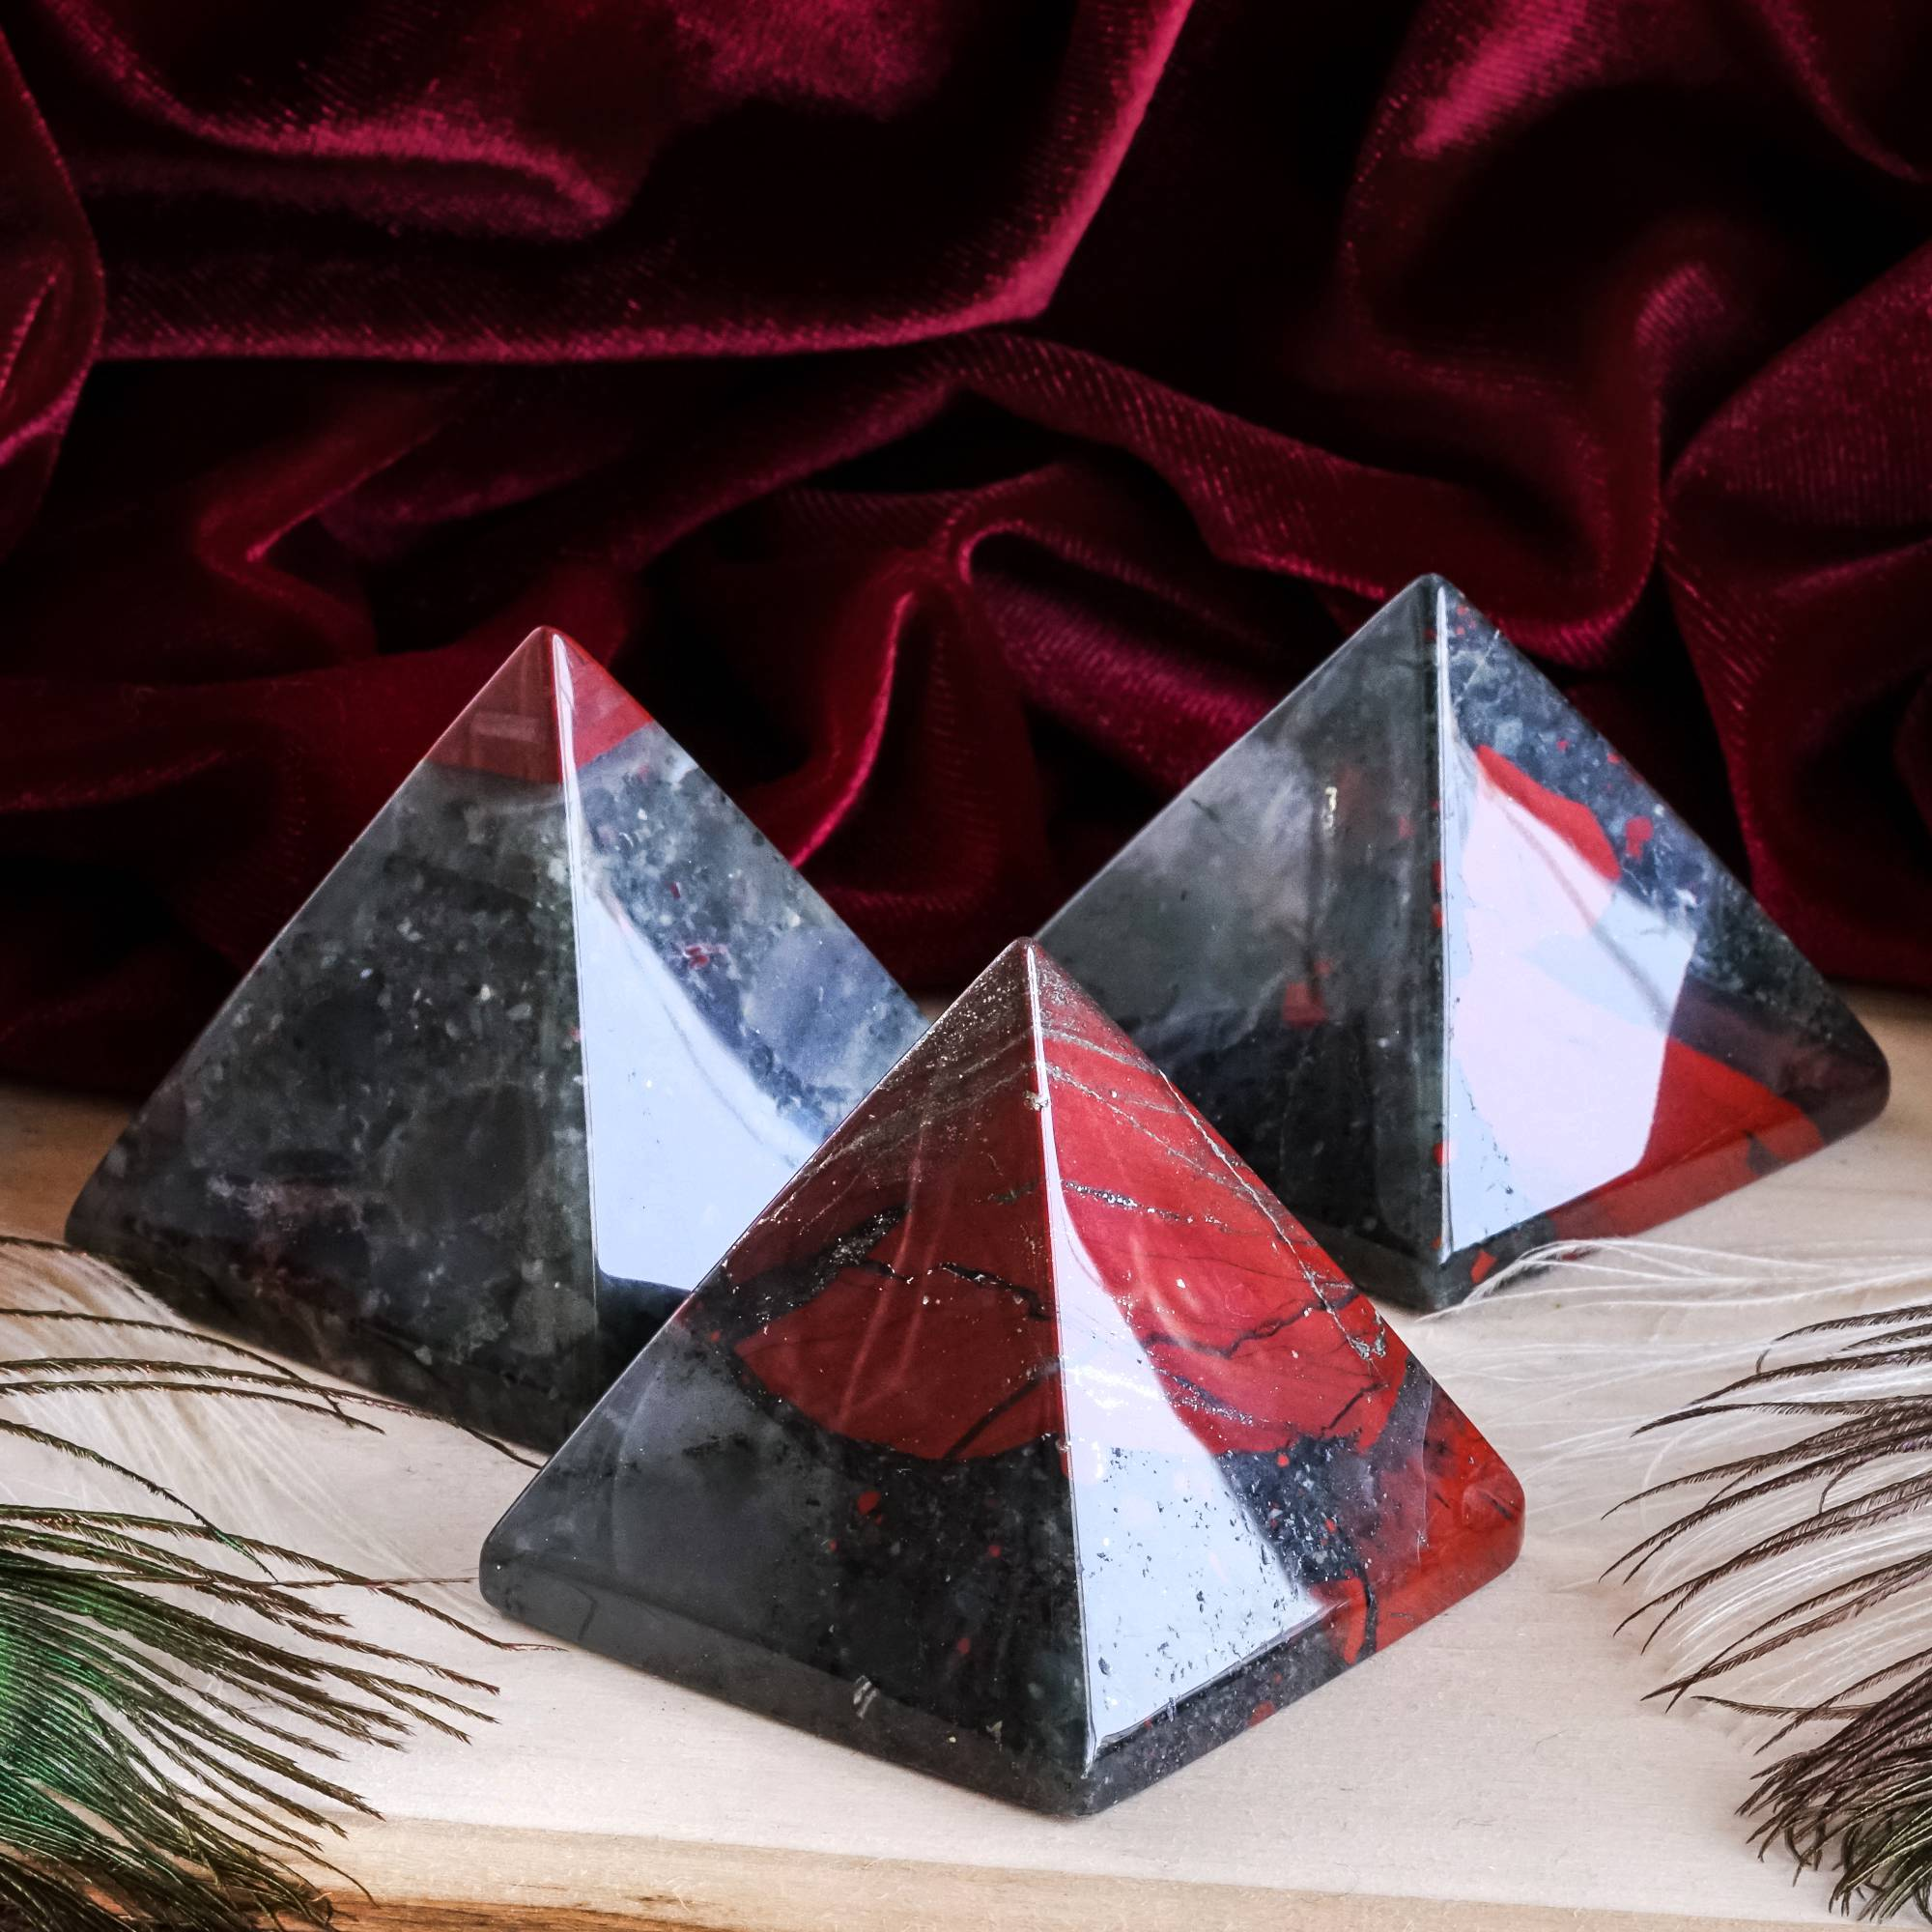 south african bloodstone pyramids